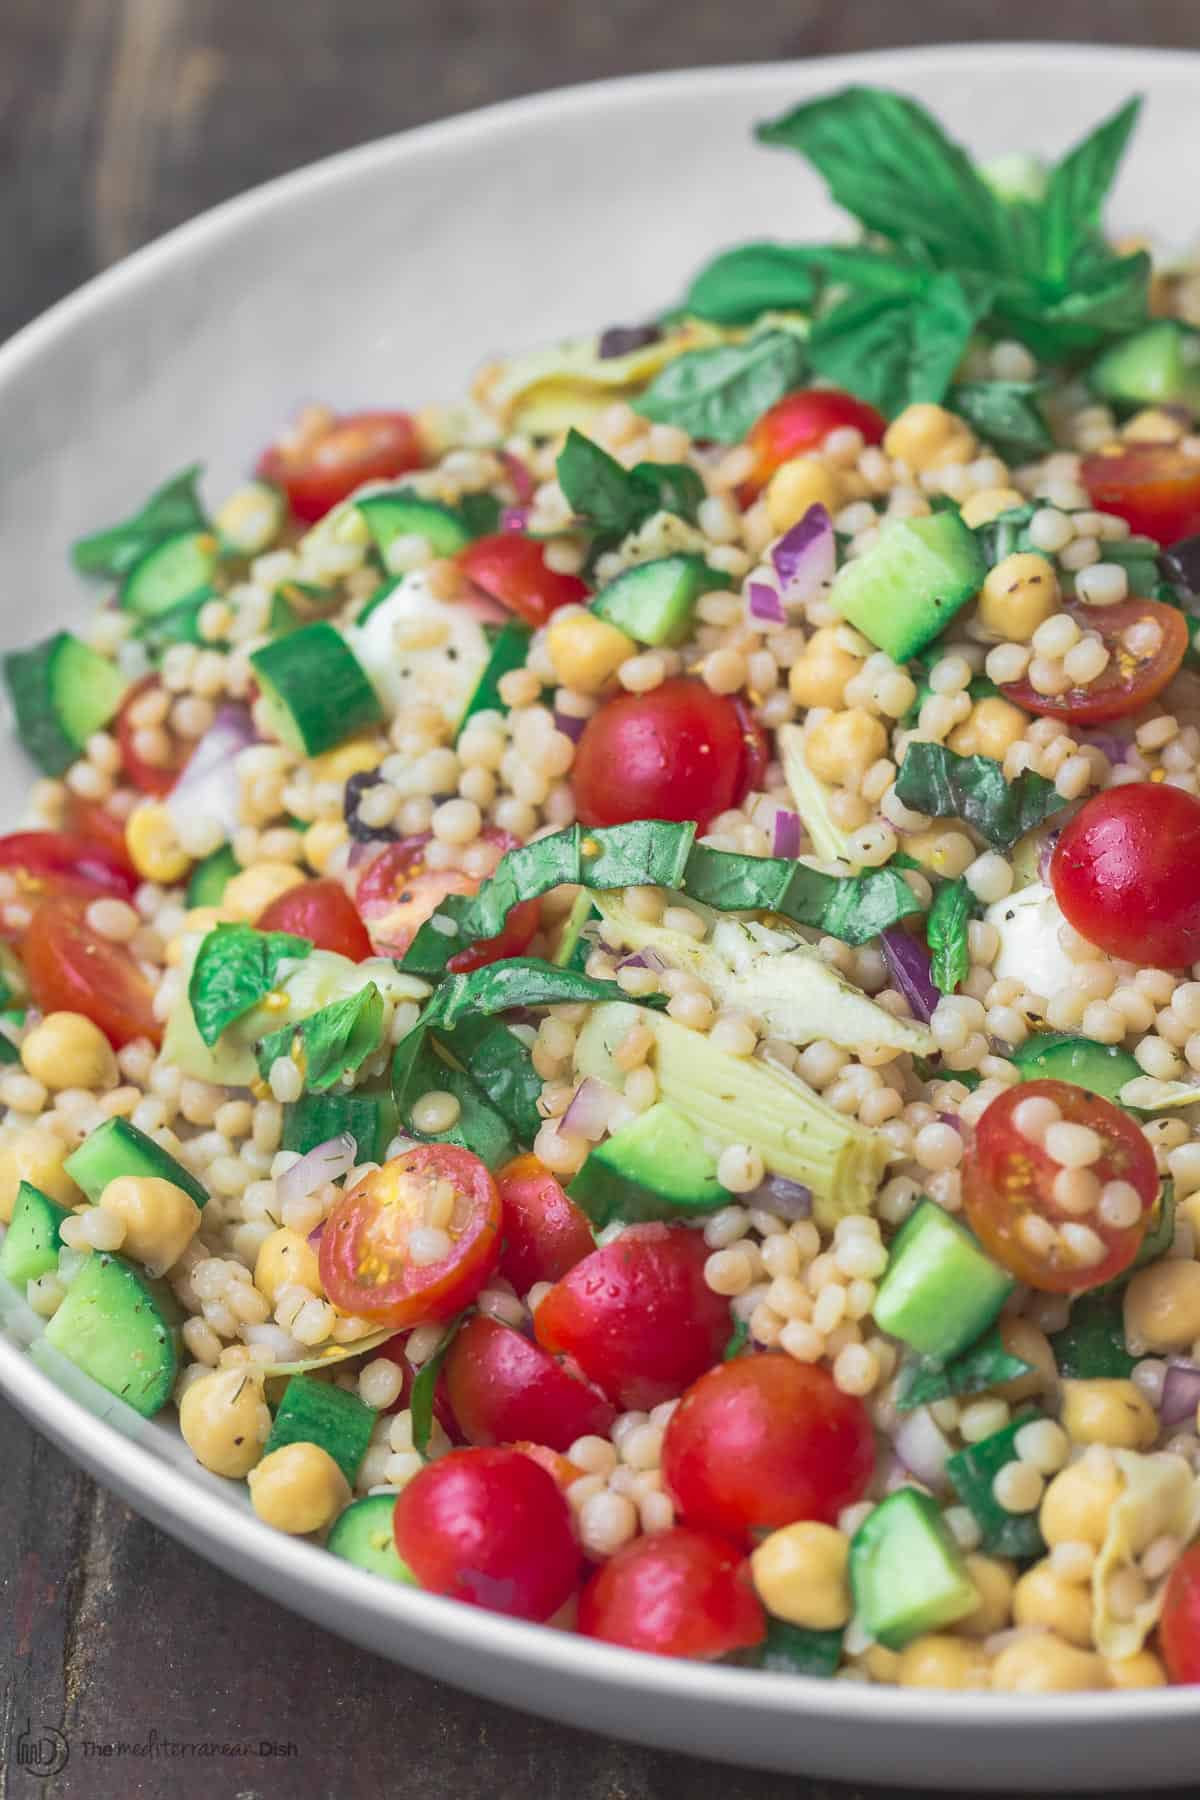 Mediterranean pearl couscous salad served in large bowl